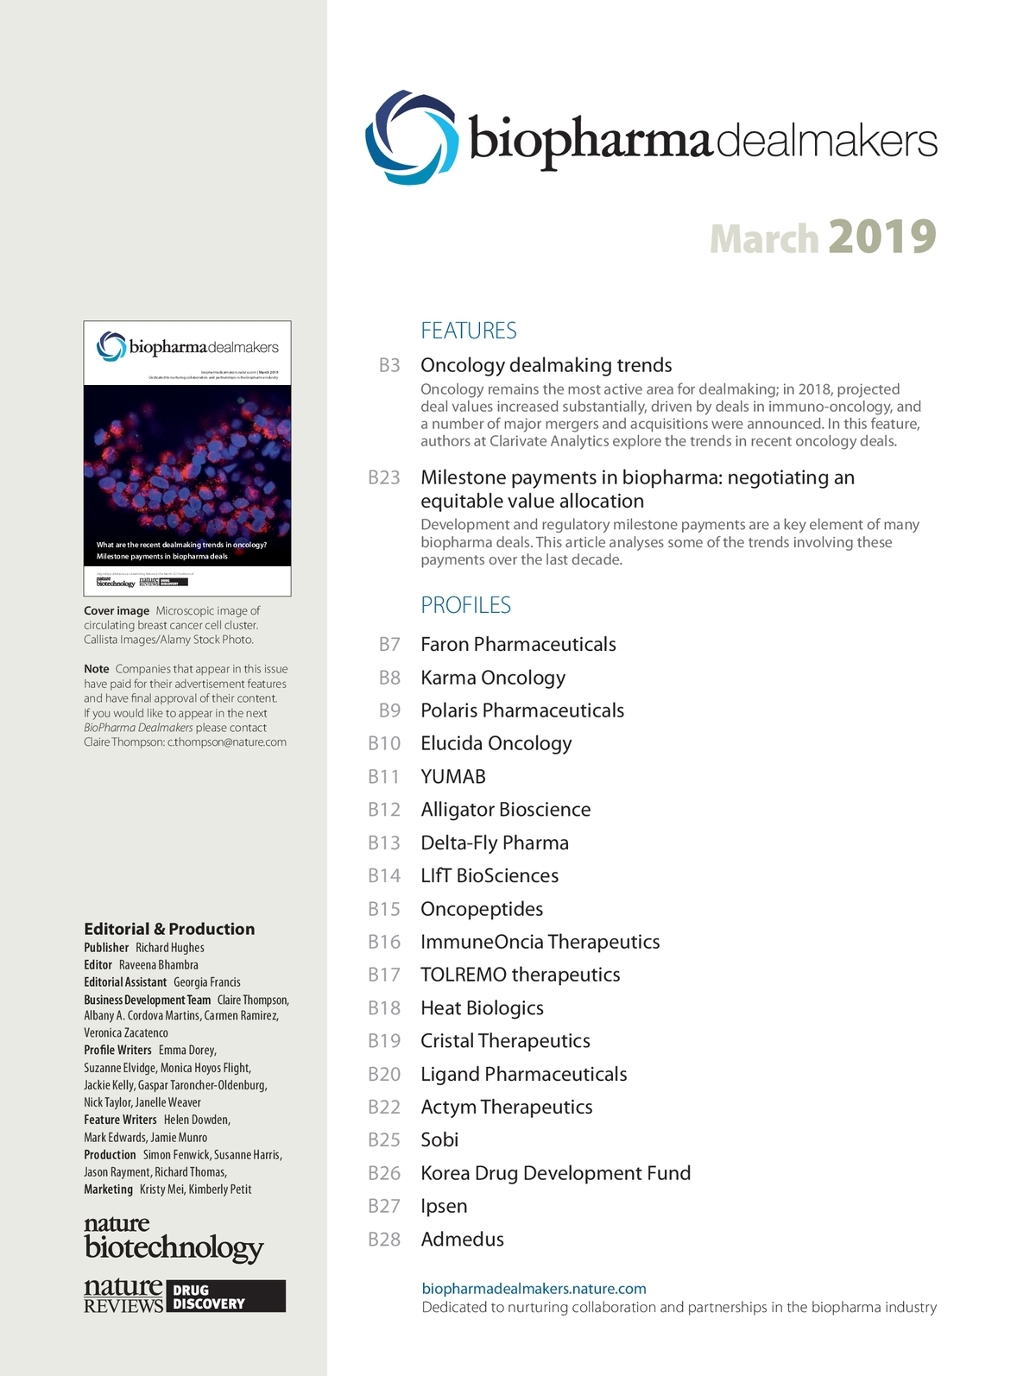 BioPharma Dealmakers March 2019